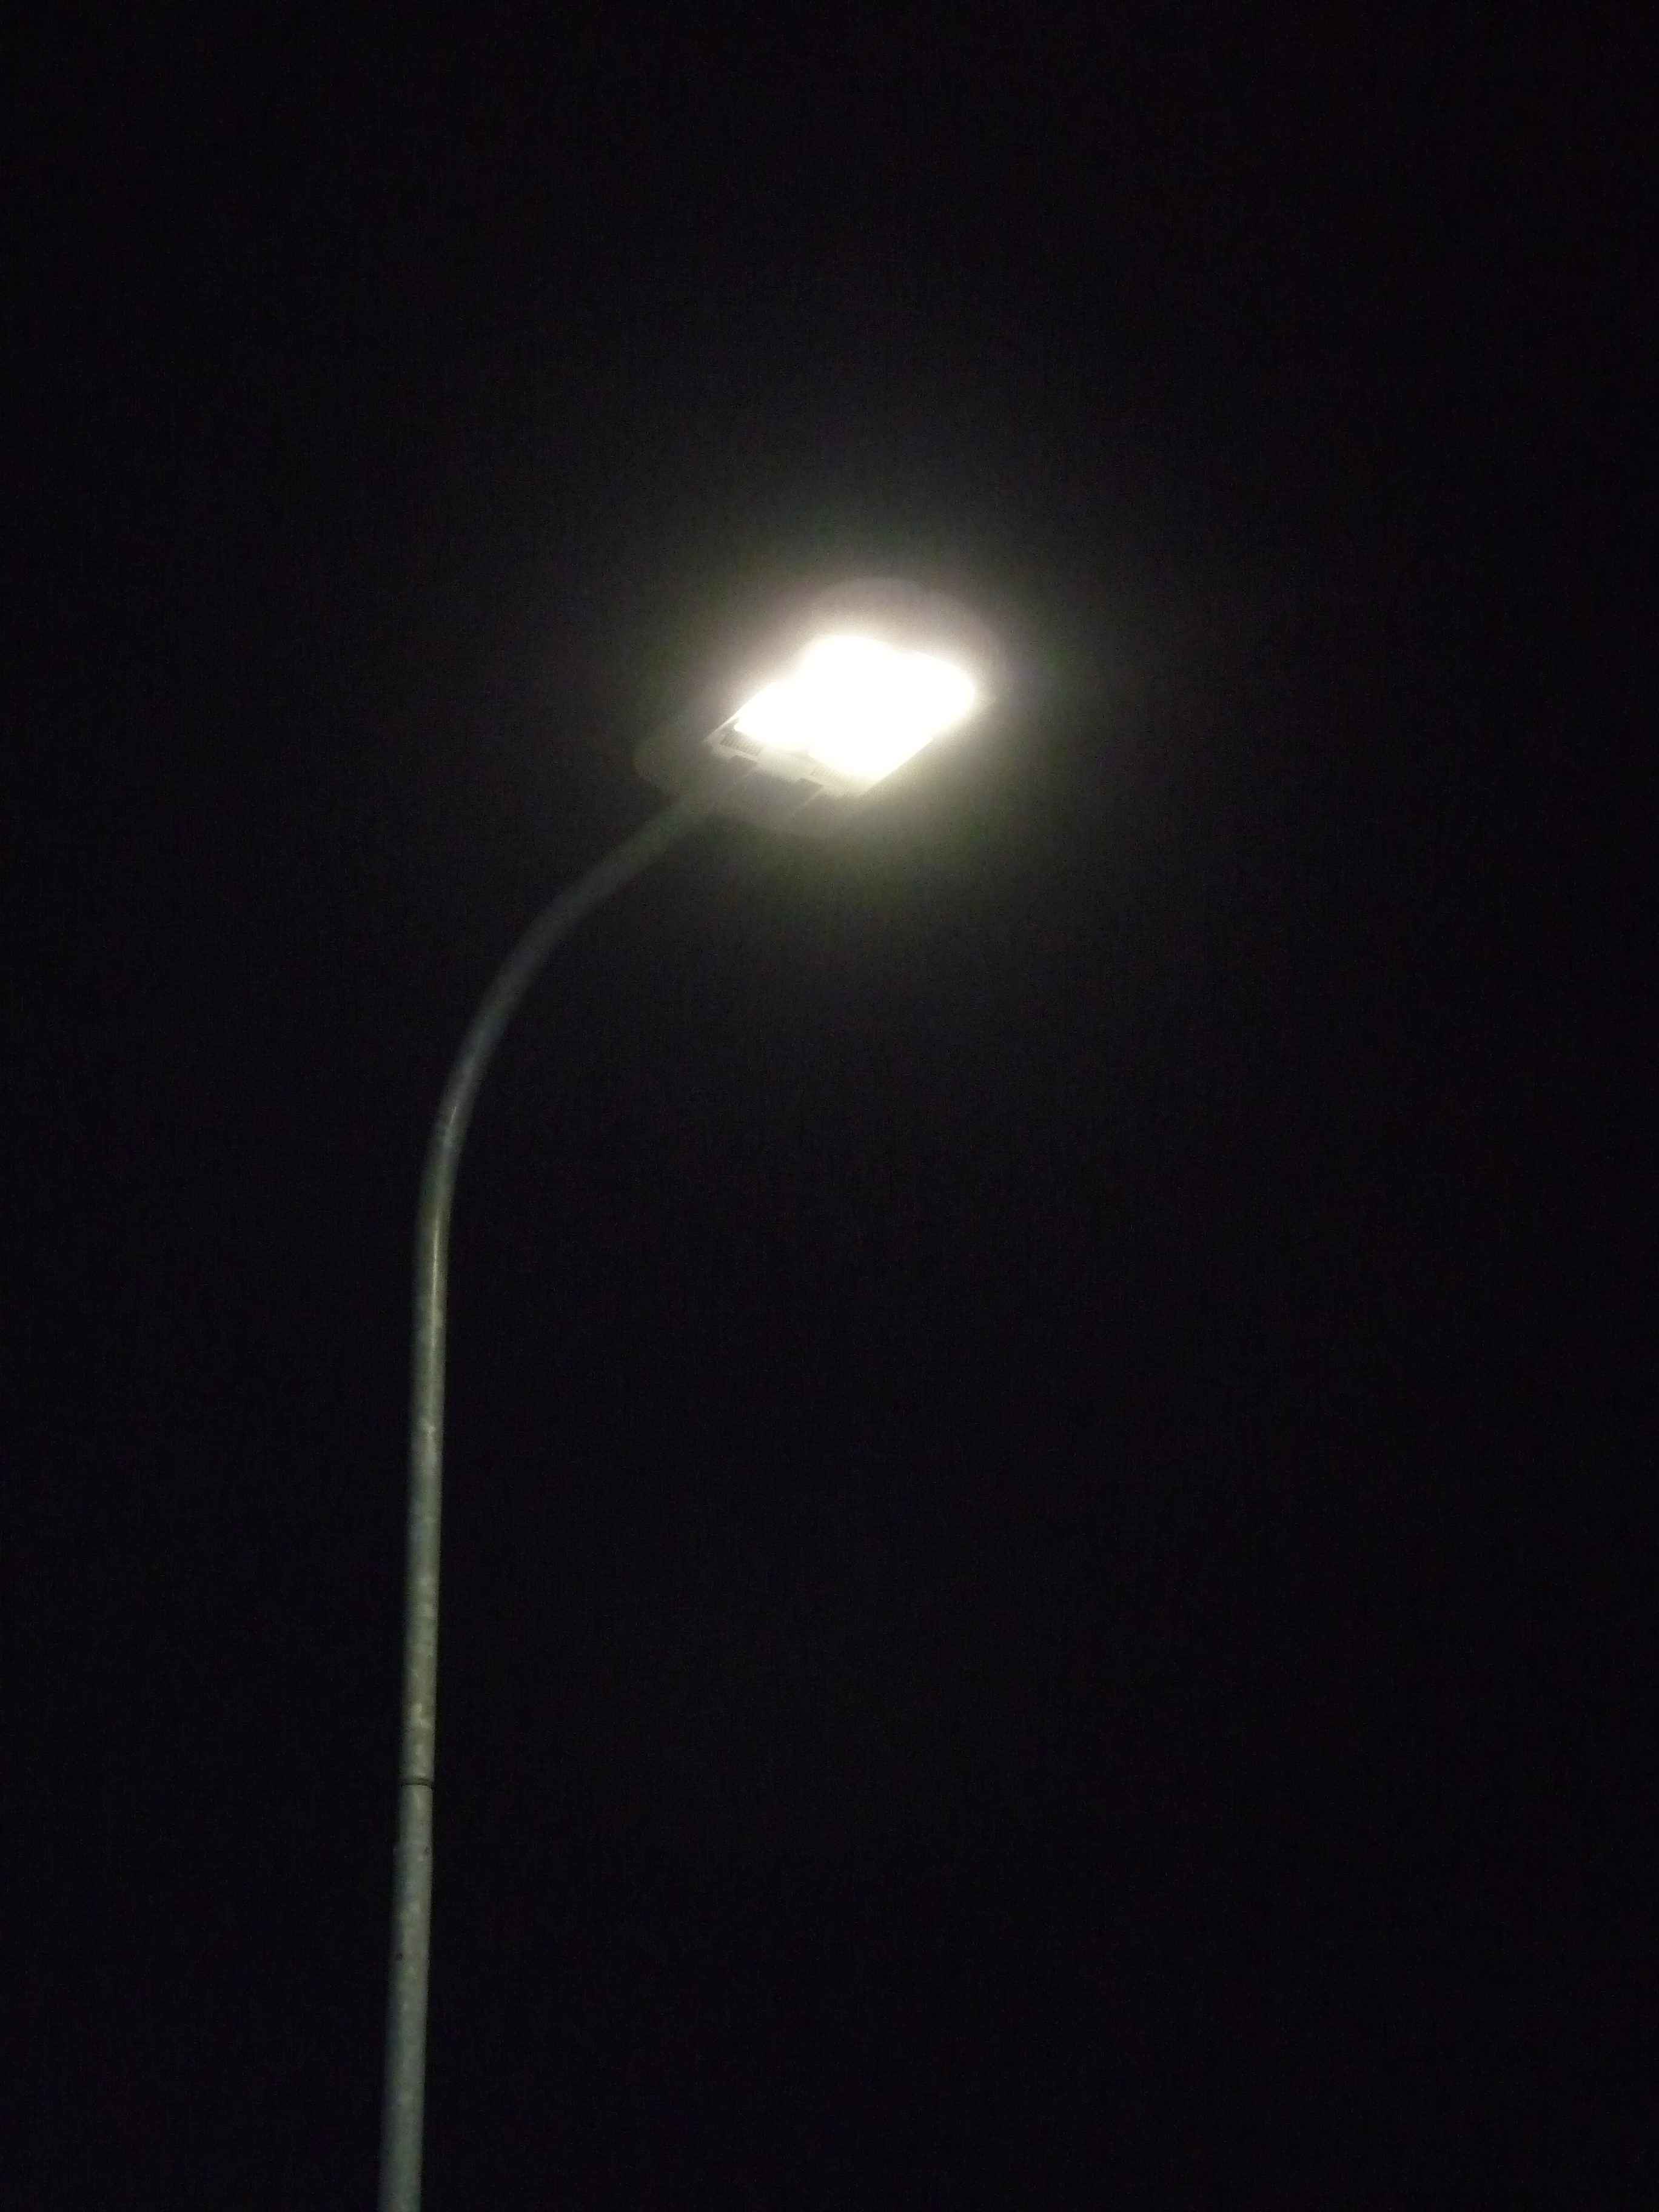 LED streetlight in Talinn, Estonia. LEDs tend to emit cooler, whitish light than fluorescent or incandescent bulbs. Image courtesy of Wikimedia.org user Dmitry G.